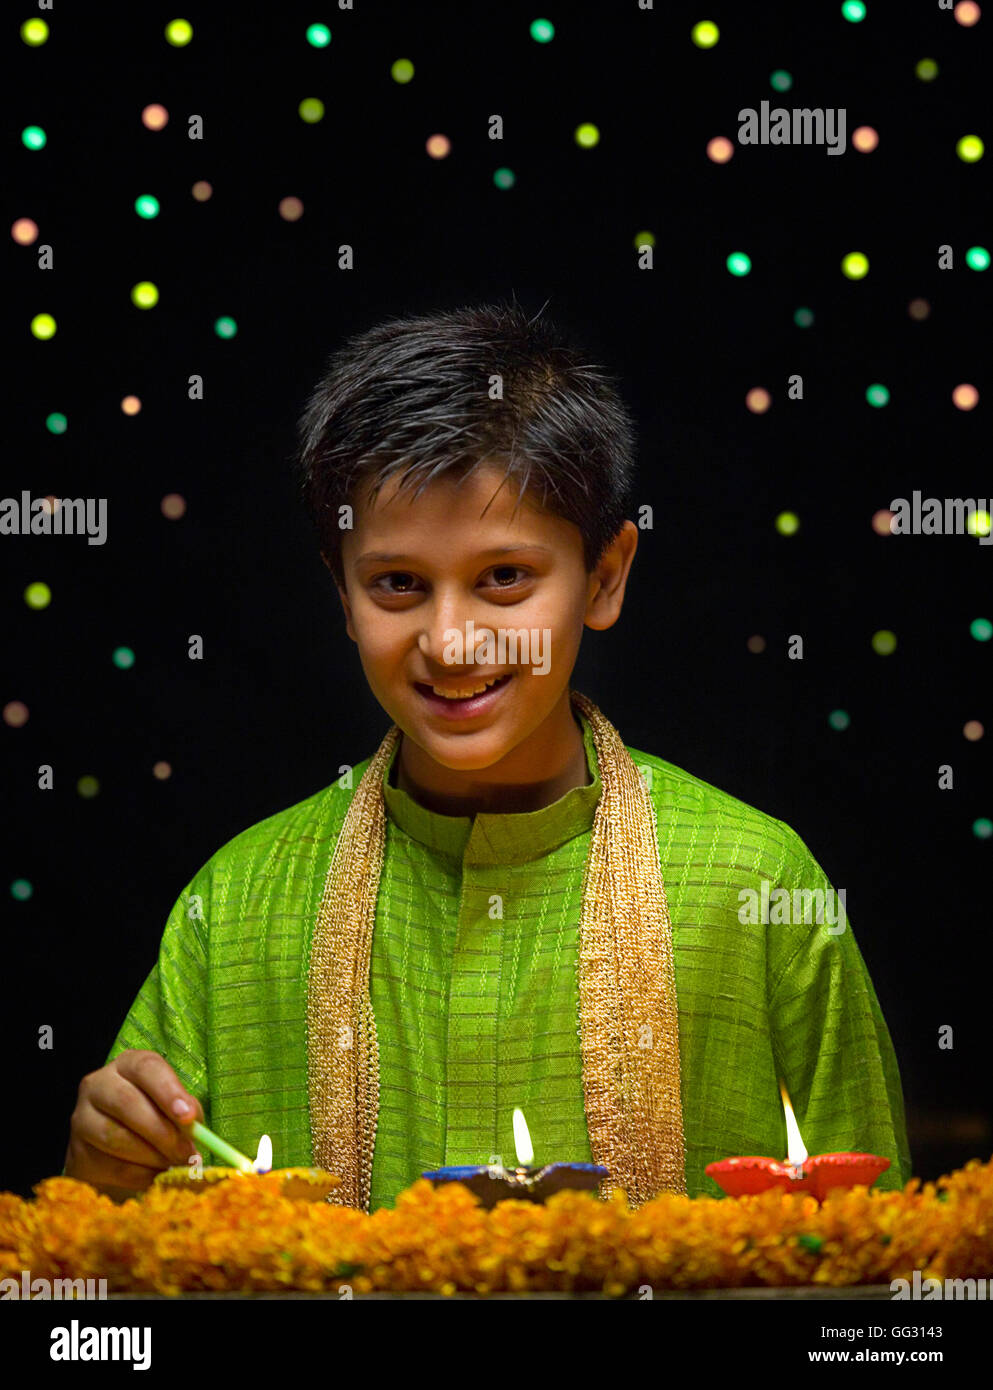 Boy lighting Diya  sc 1 st  Alamy & Boy lighting Diya Stock Photo Royalty Free Image: 113163459 - Alamy azcodes.com